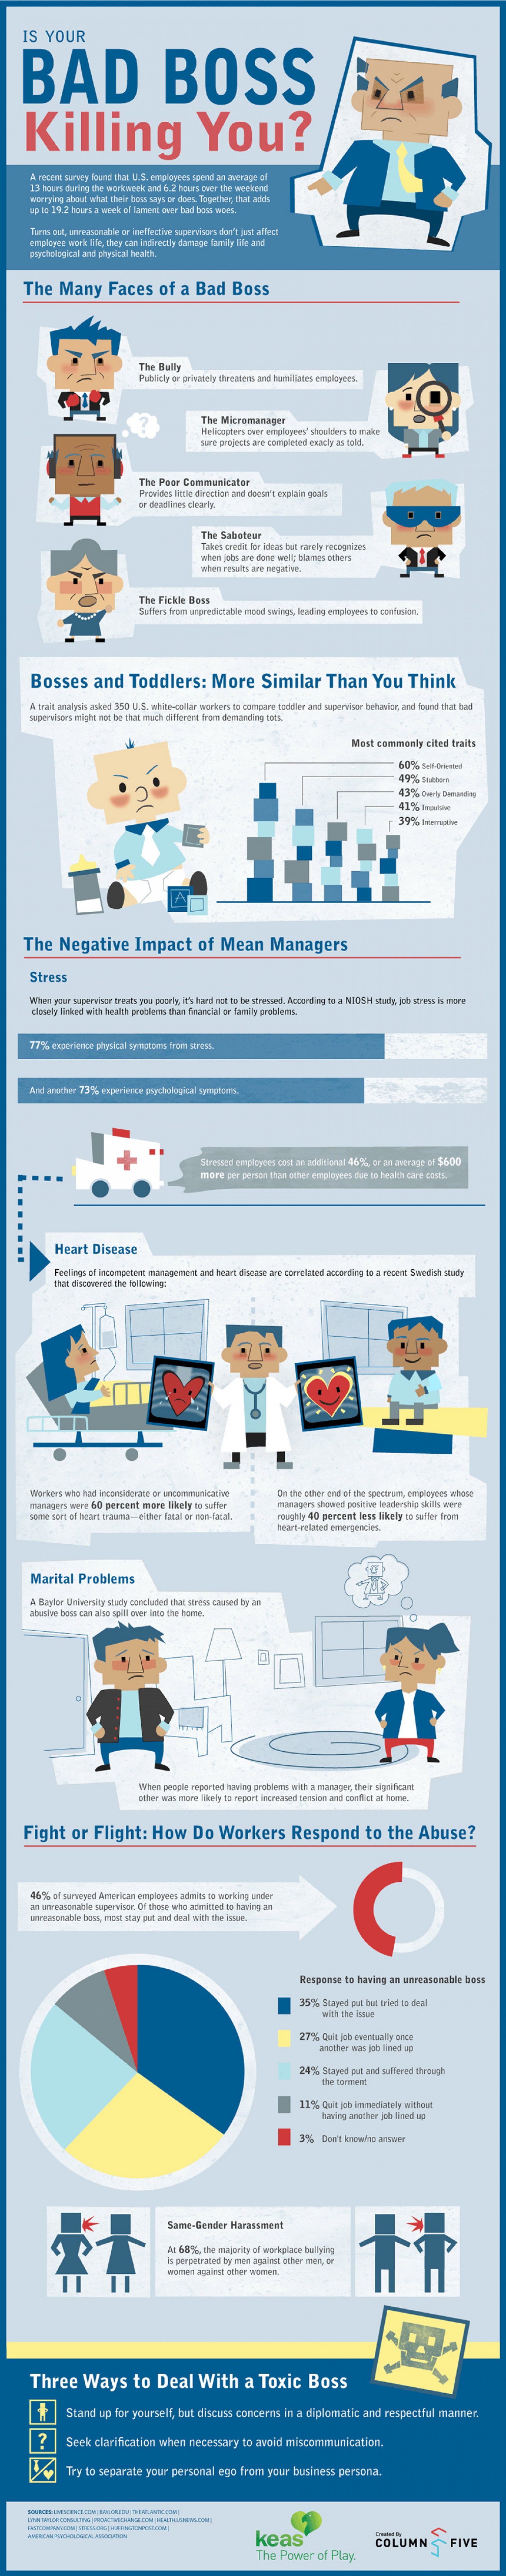 Is Your Bad Boss Killing You? Infographic